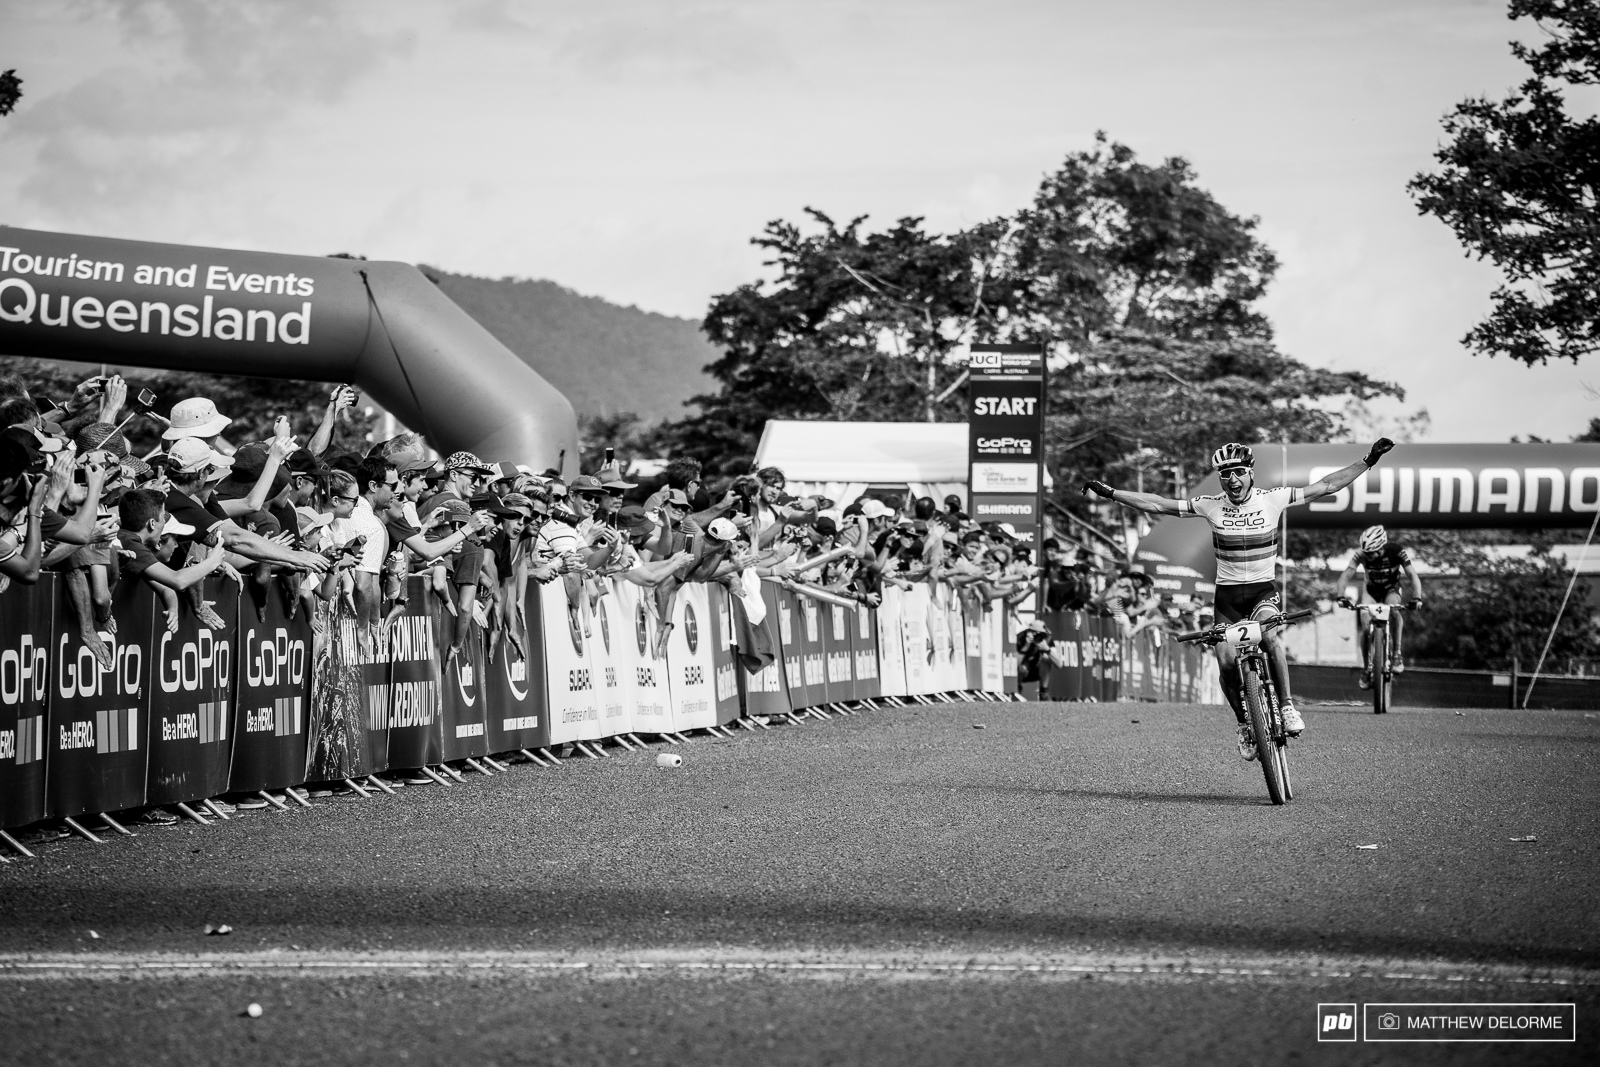 Nino Schurter crosses the line with Maxime Marotte coming in just behind him.